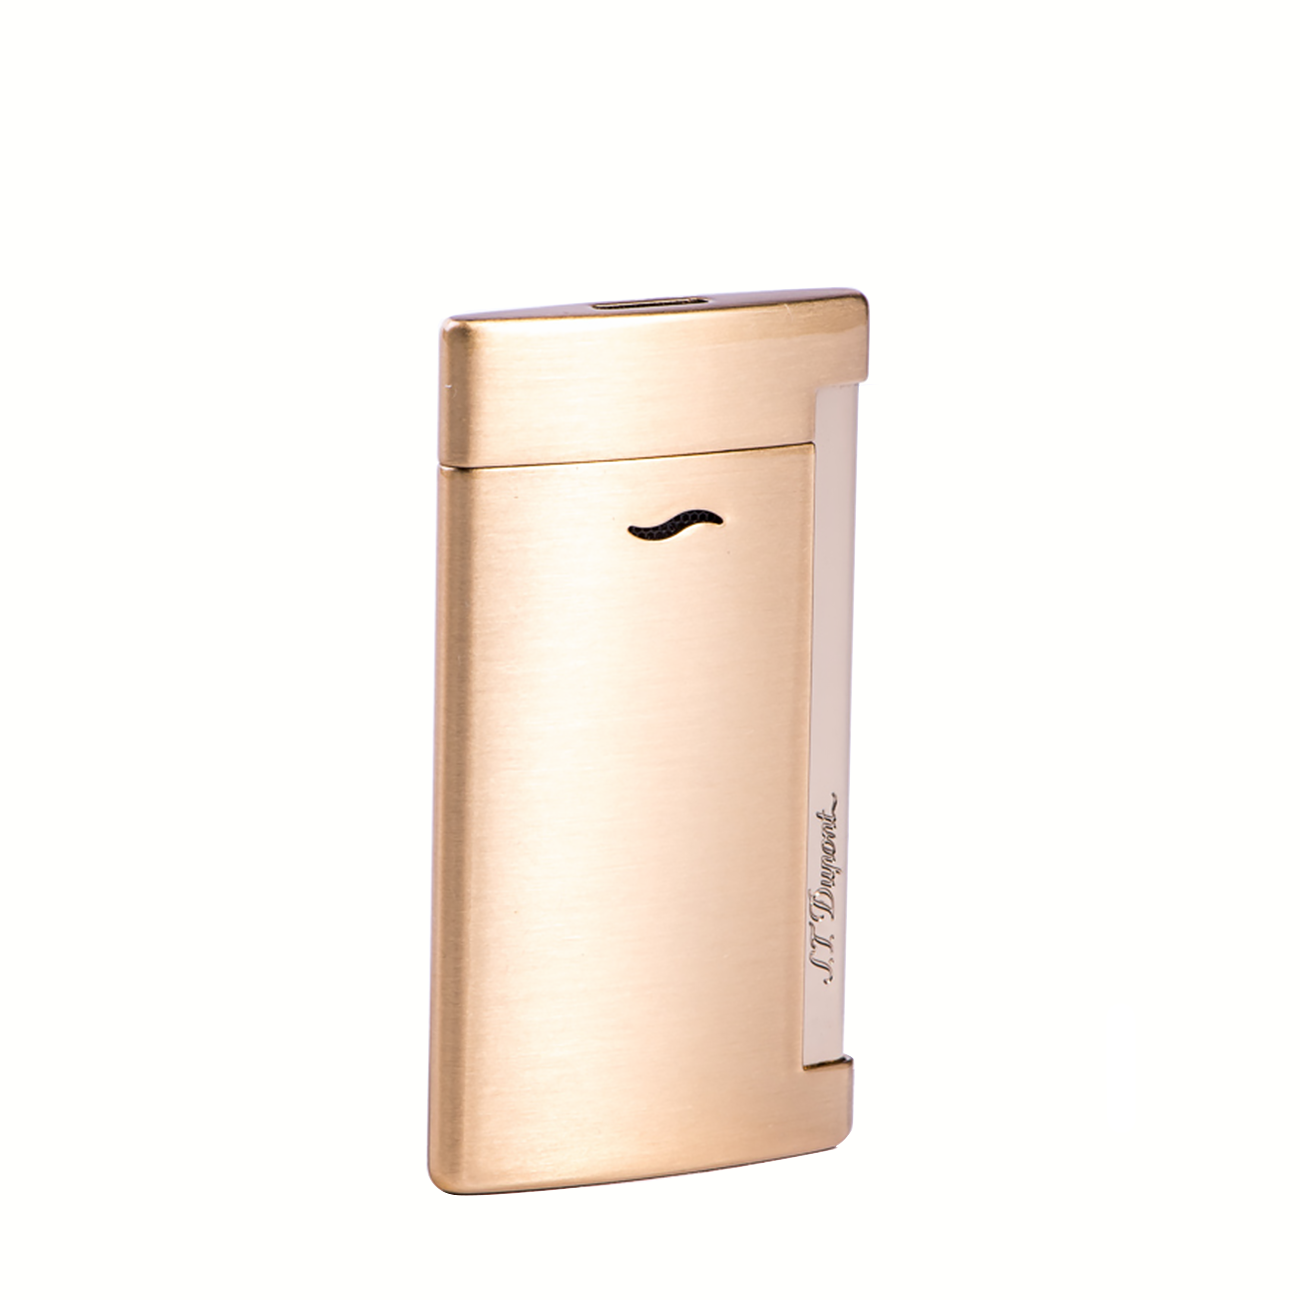 027711 CHROME FINISH LIGHTER imagine produs